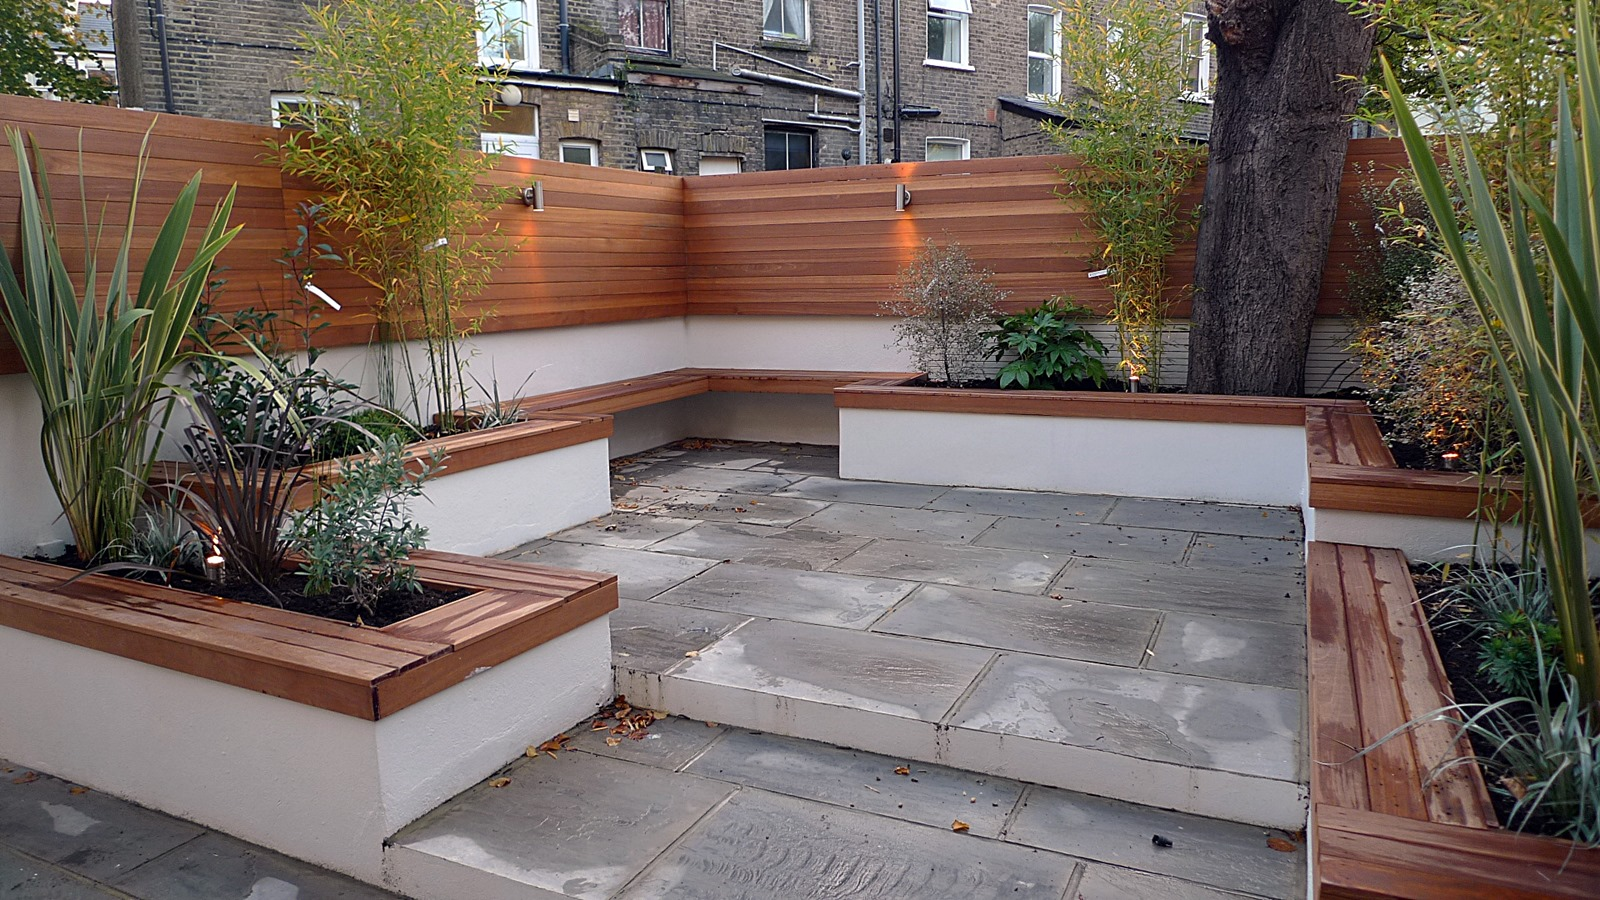 modern london courtyard low maintenance urban outdoor indoor living garden space paving screens planting bench raised beds (7)